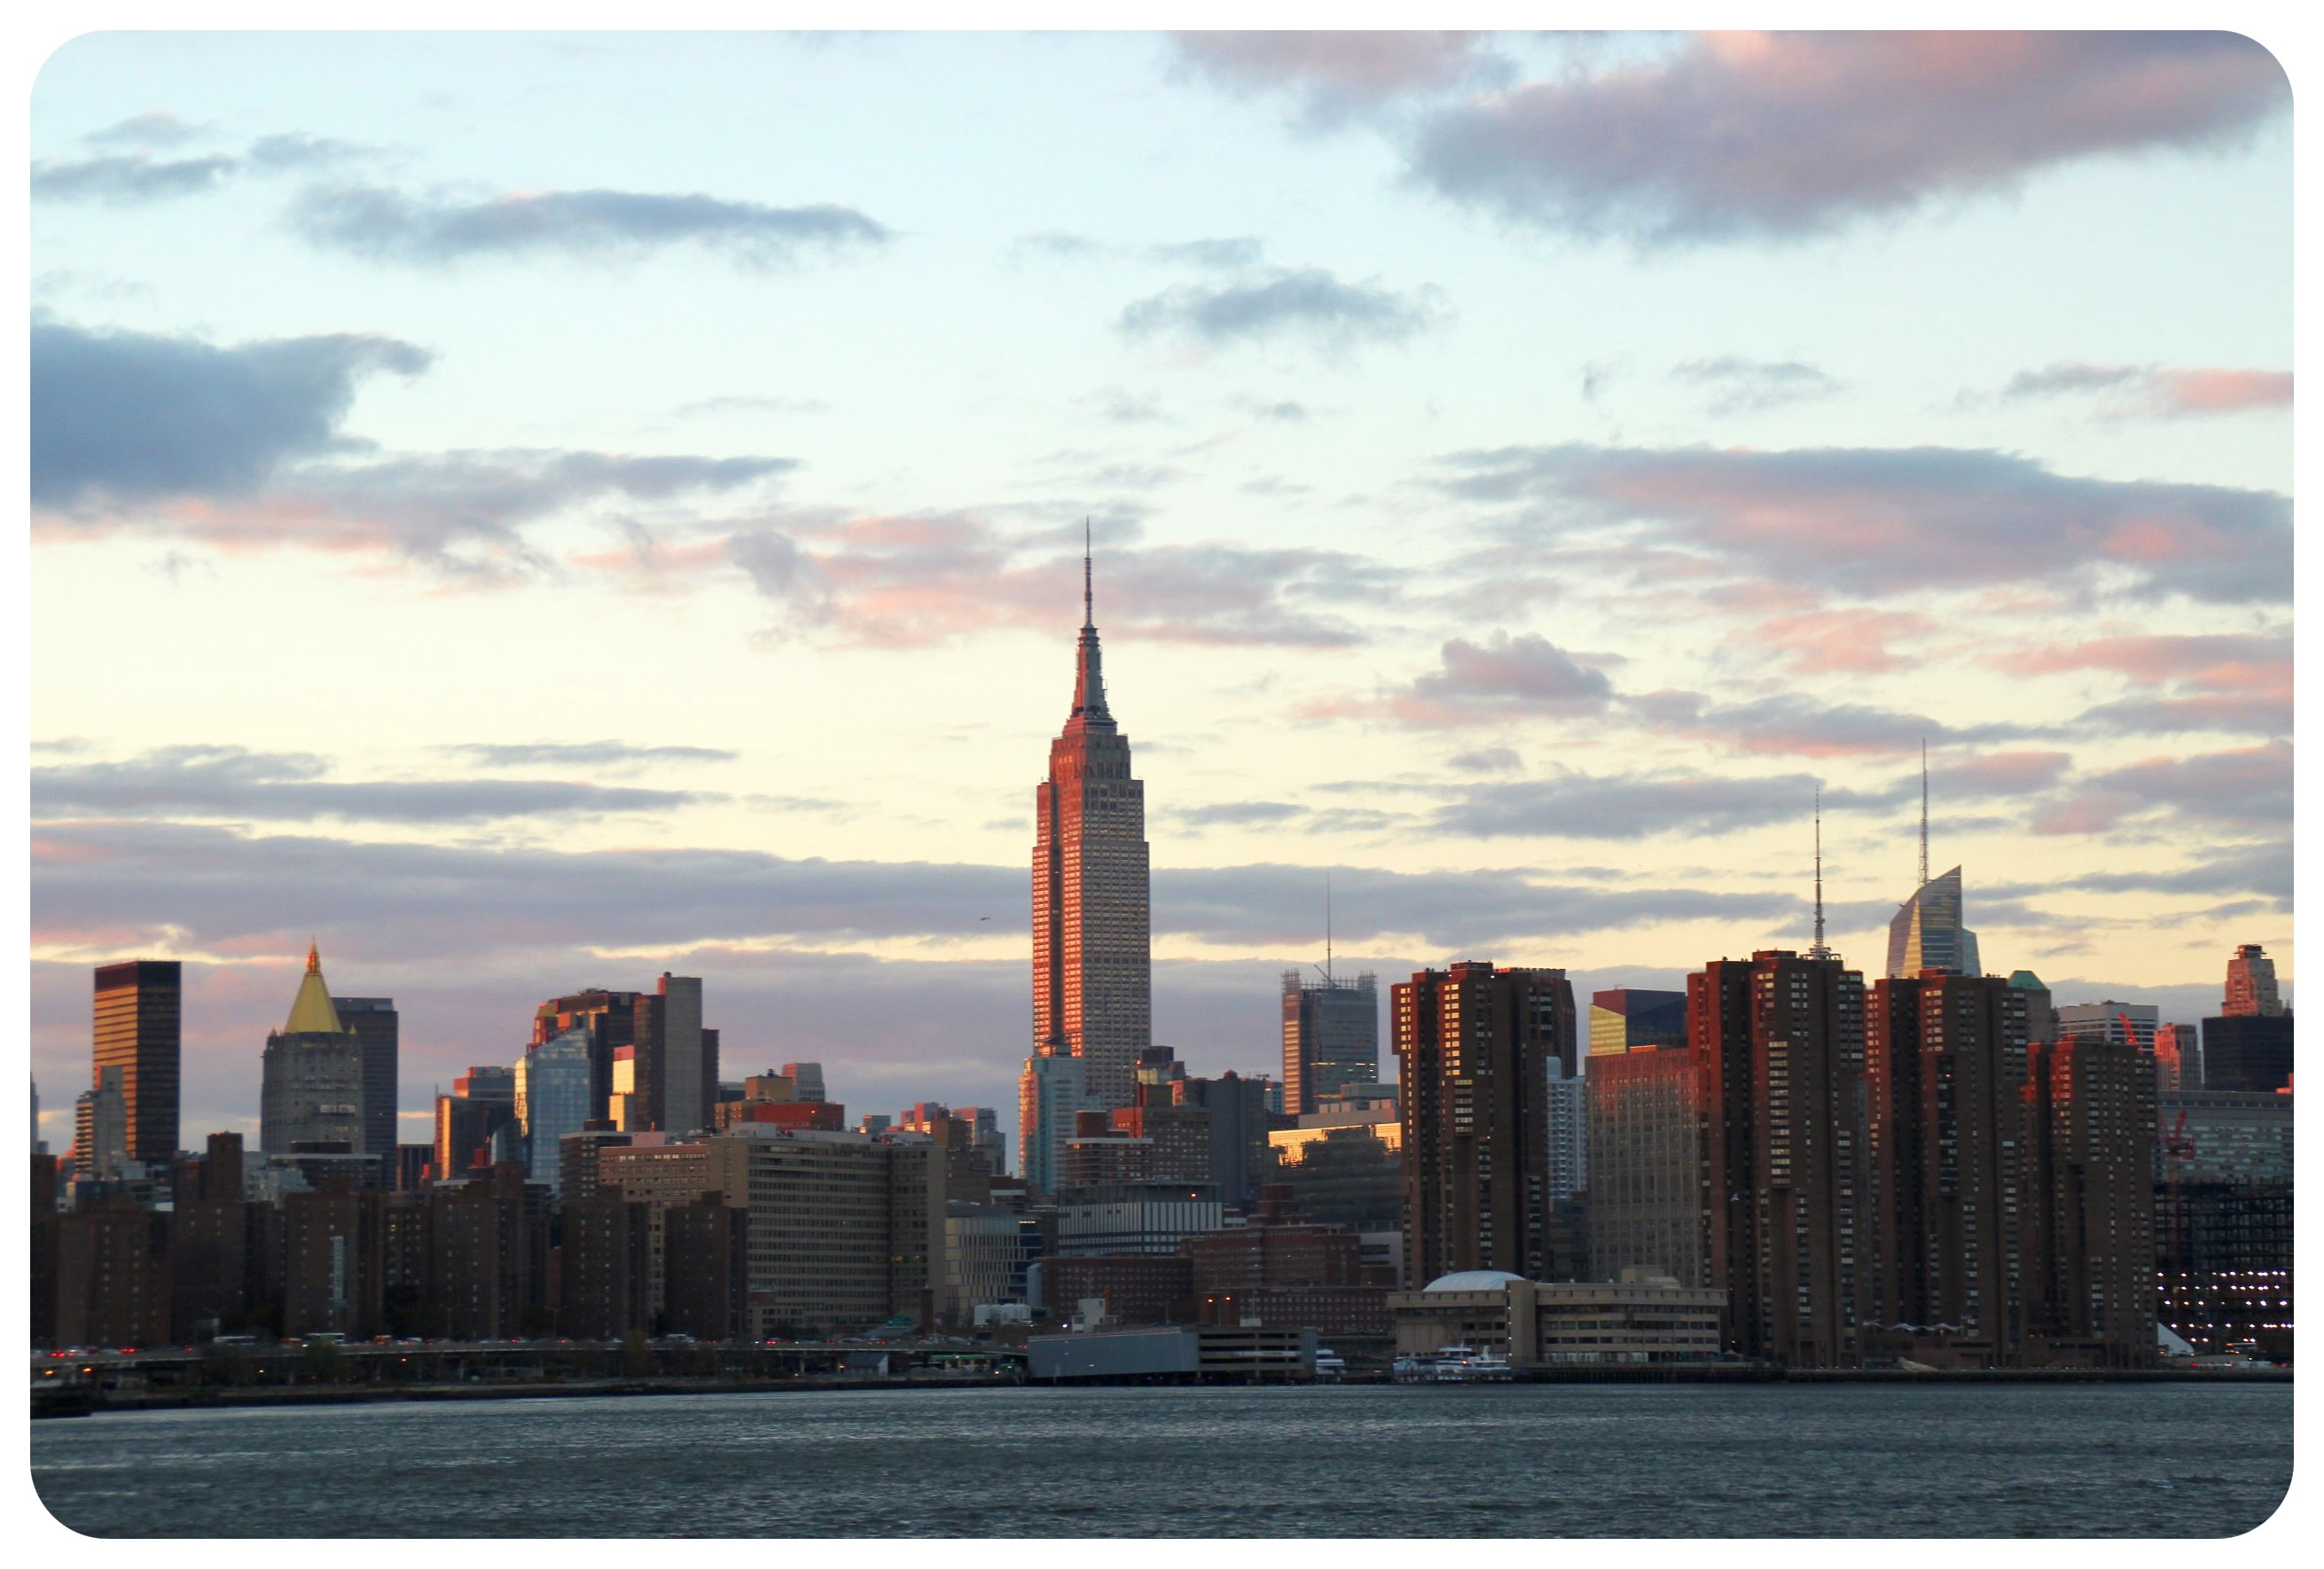 new york east river state park view with empire state building